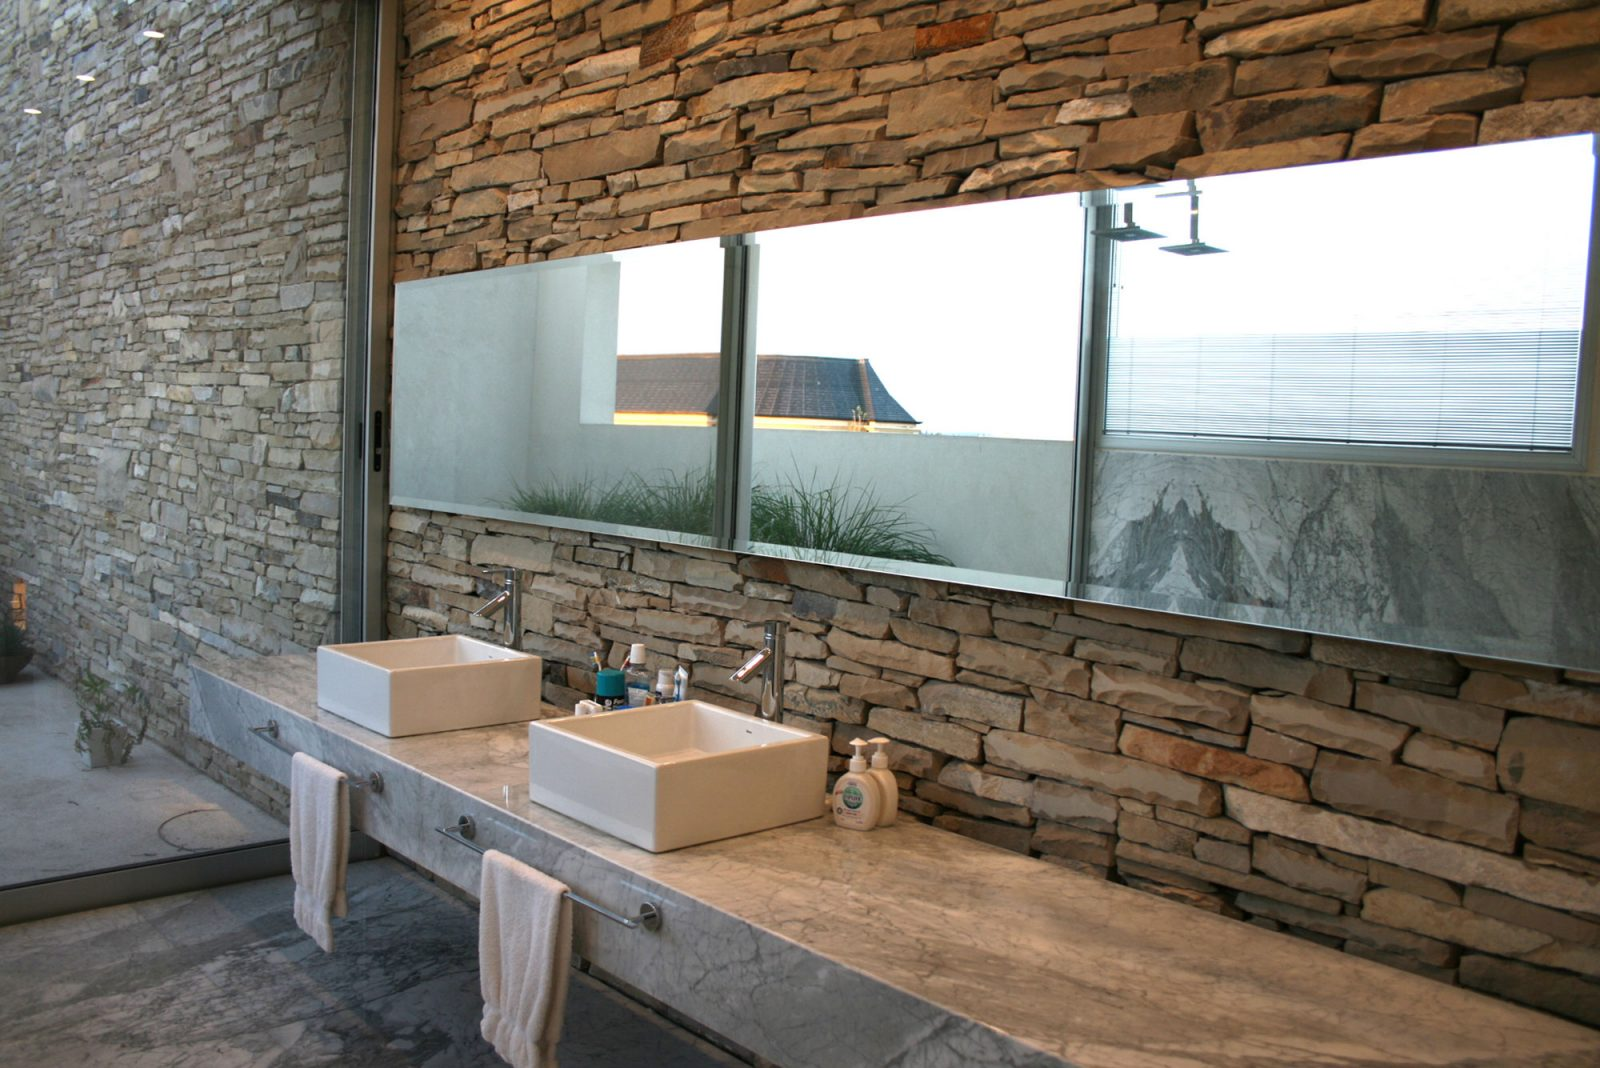 Baño Rustico Moderno:Rustic Modern Bathroom Design Ideas